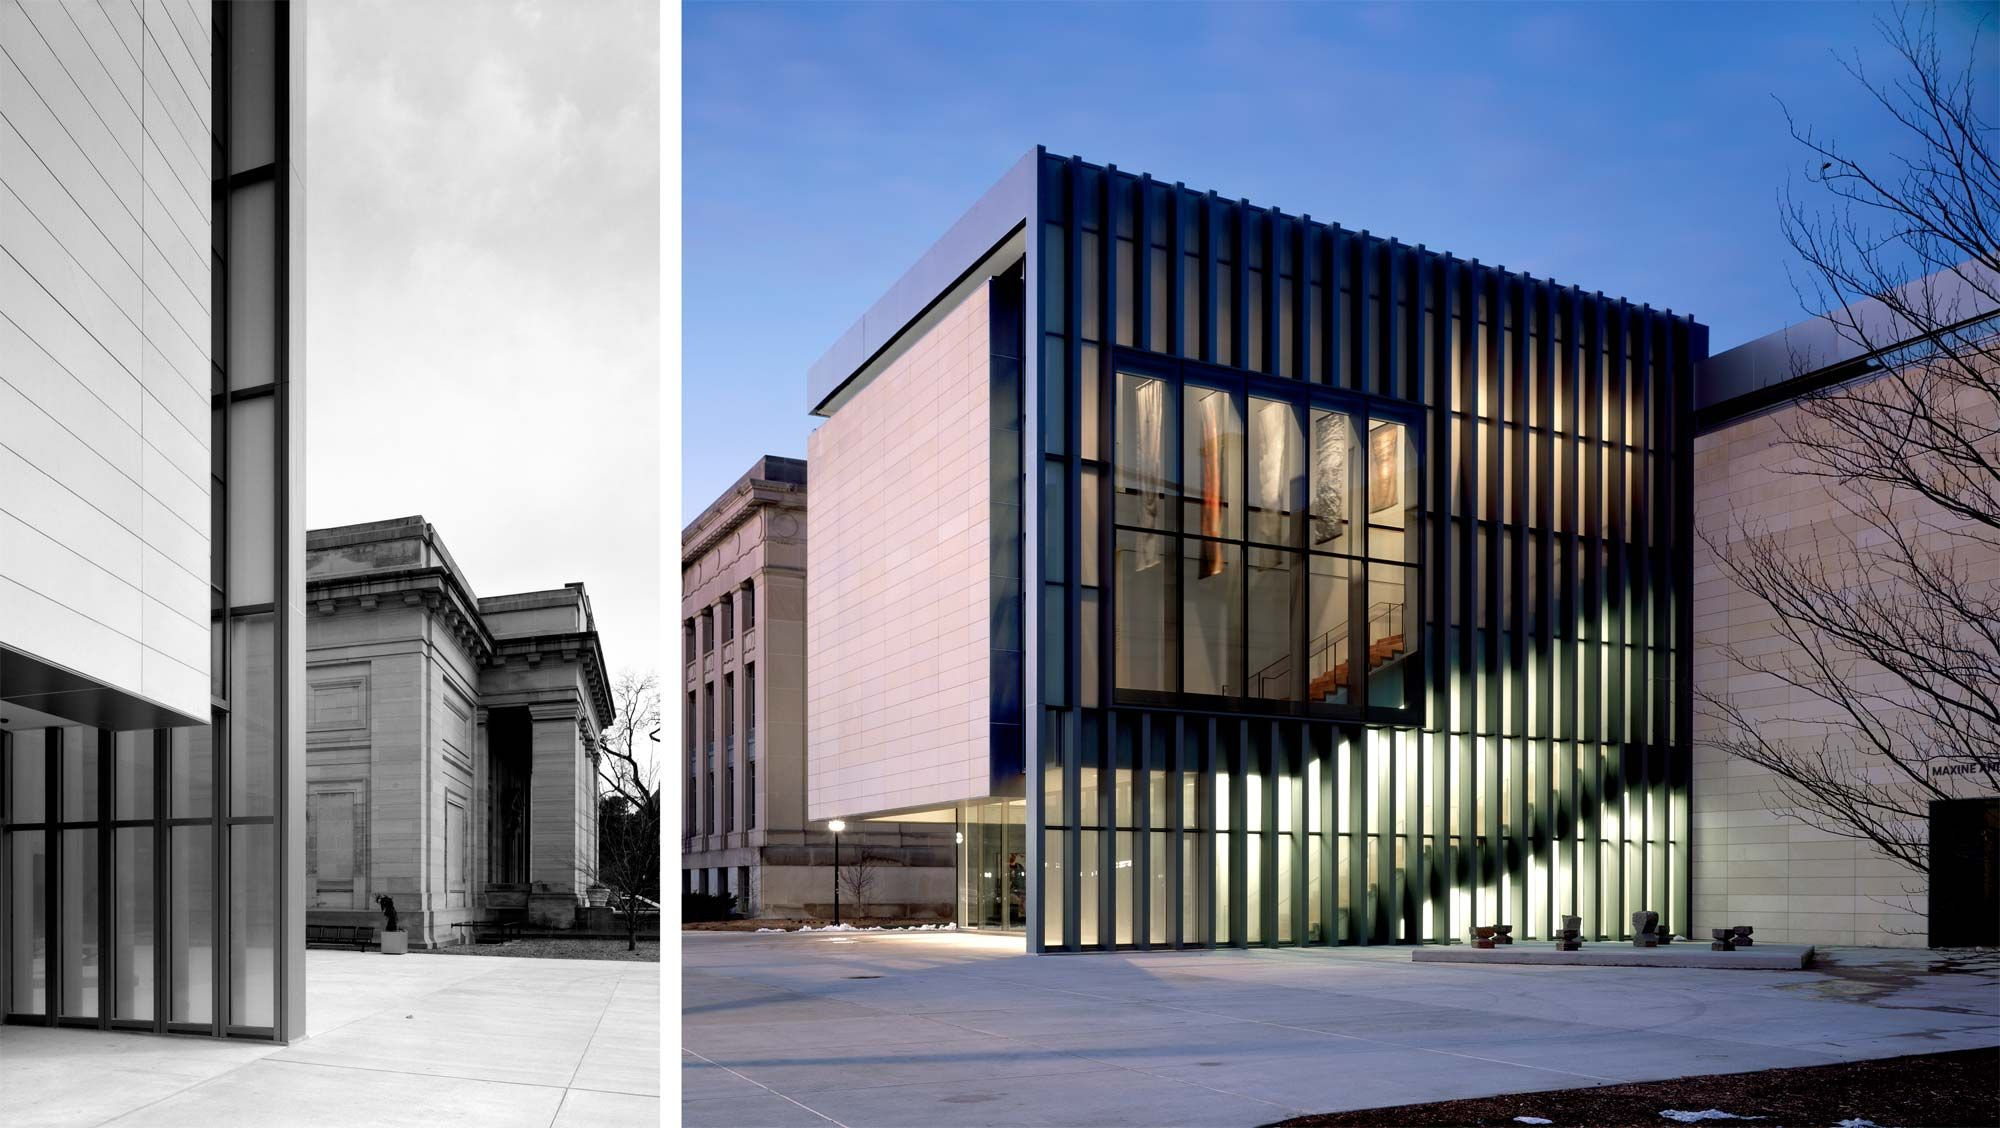 Delicieux University Of Michigan Museum Of Art / Allied Works Architecture With  Integrated Design Solutions (Click Image For More).